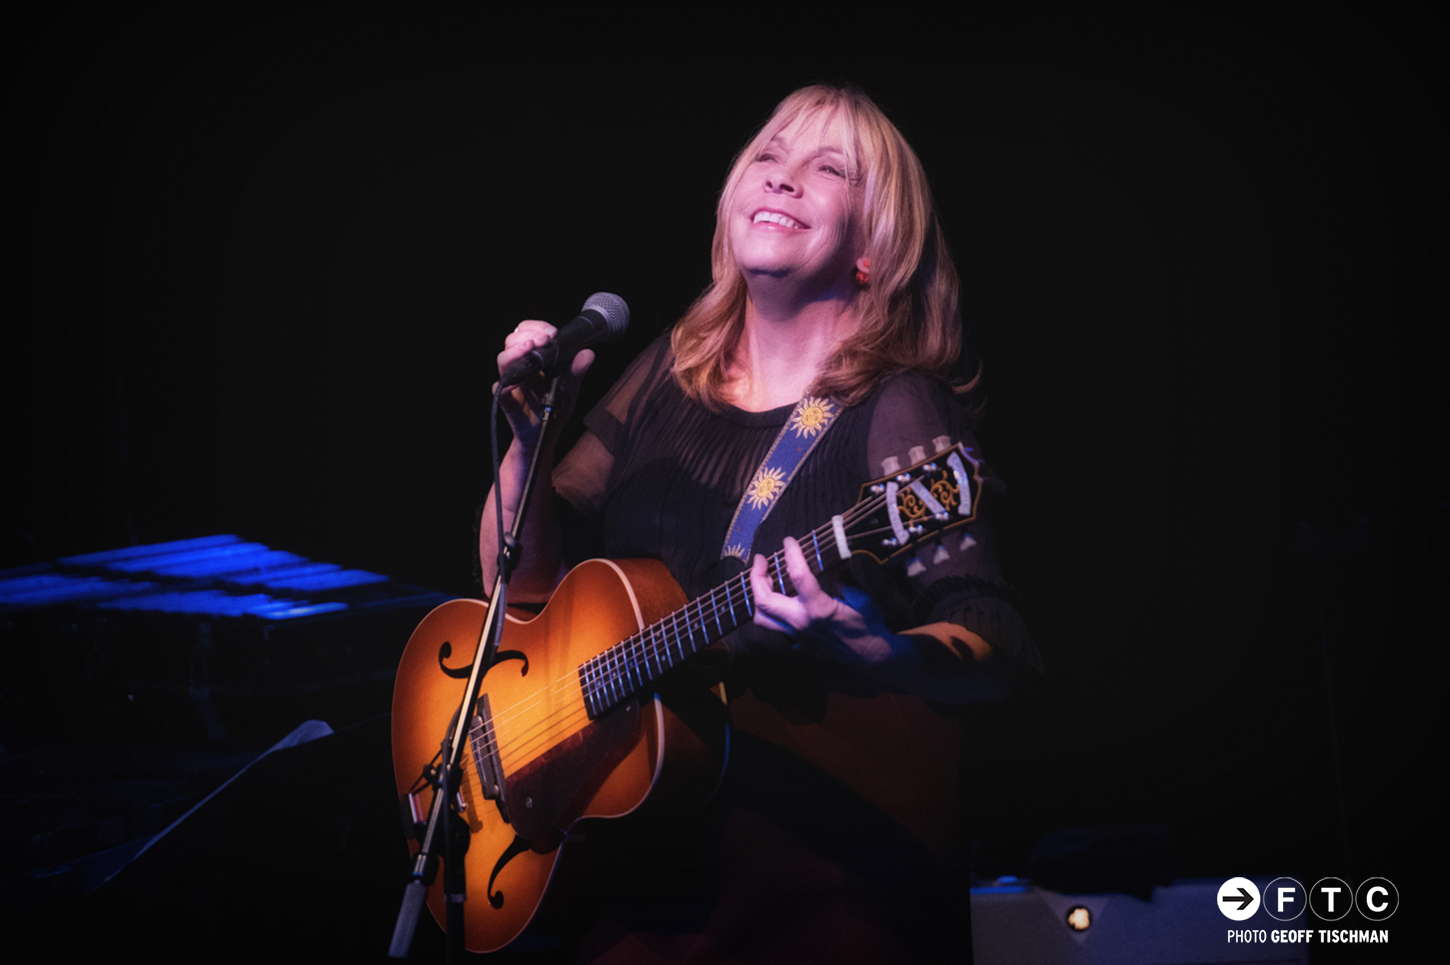 Rickie Lee Jones' First Two Albums Set For Vinyl Release